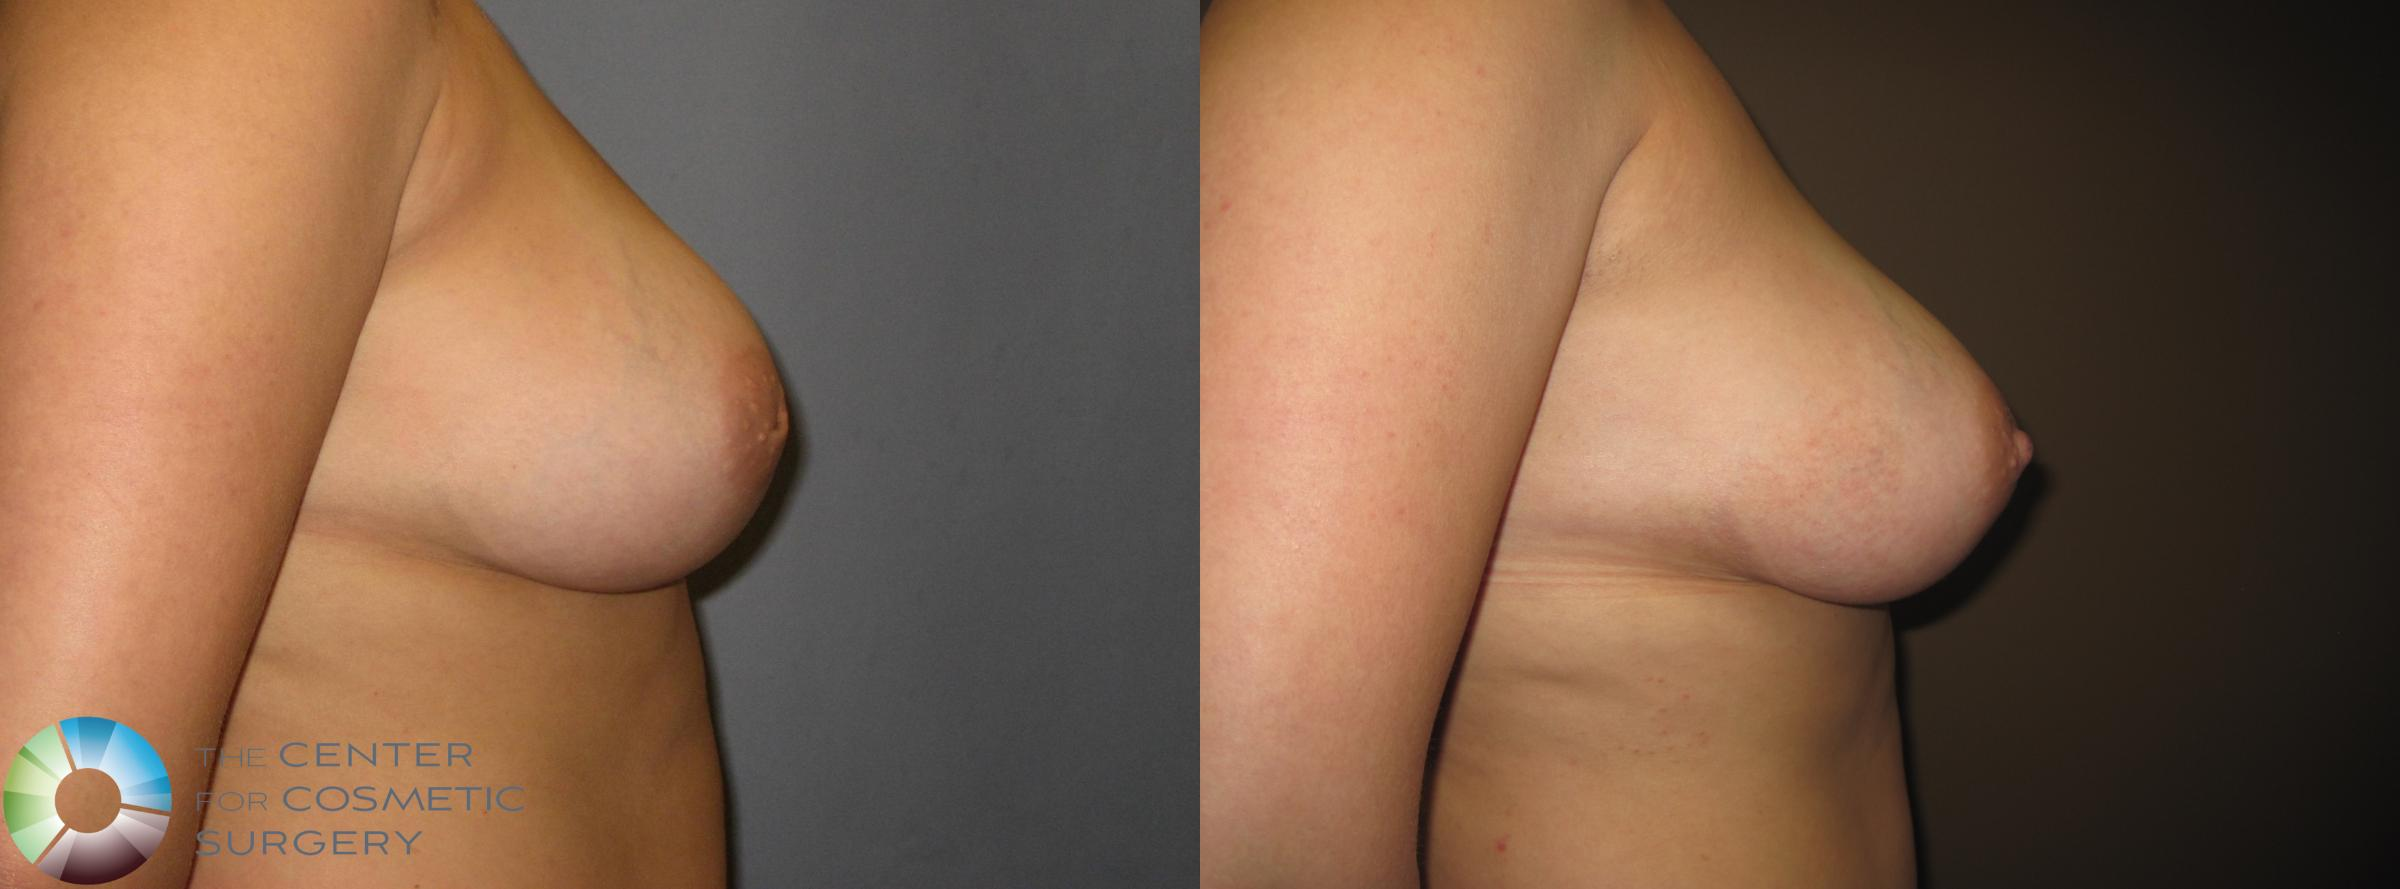 Inverted Nipple Repair Case 391 Before & After View #2 | Denver & Golden, CO | The Center for Cosmetic Surgery